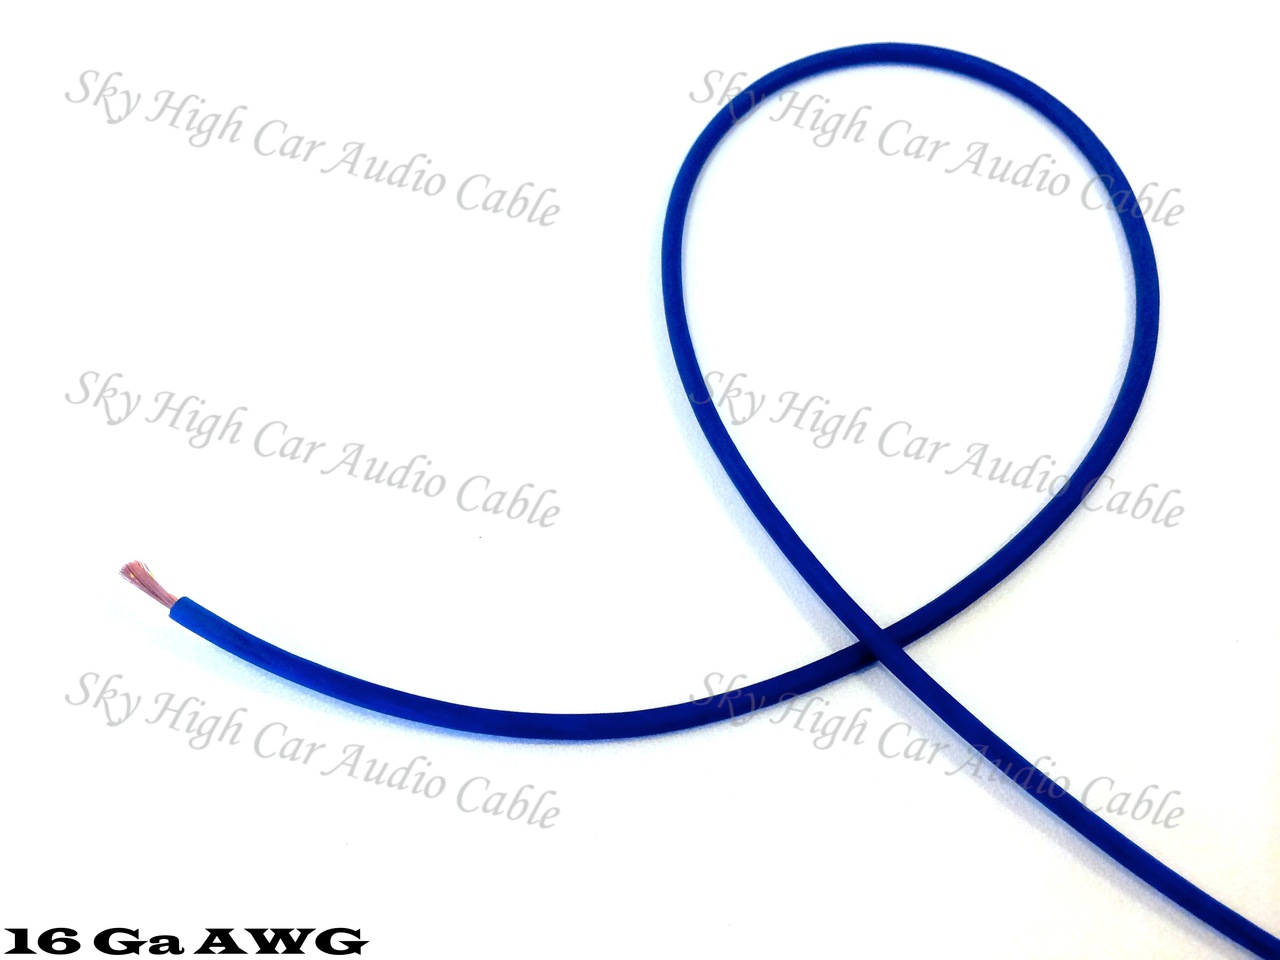 Sky High Car Audio OFC 16 Gauge Primary Wire- 500ft Spool 25ft-500ft